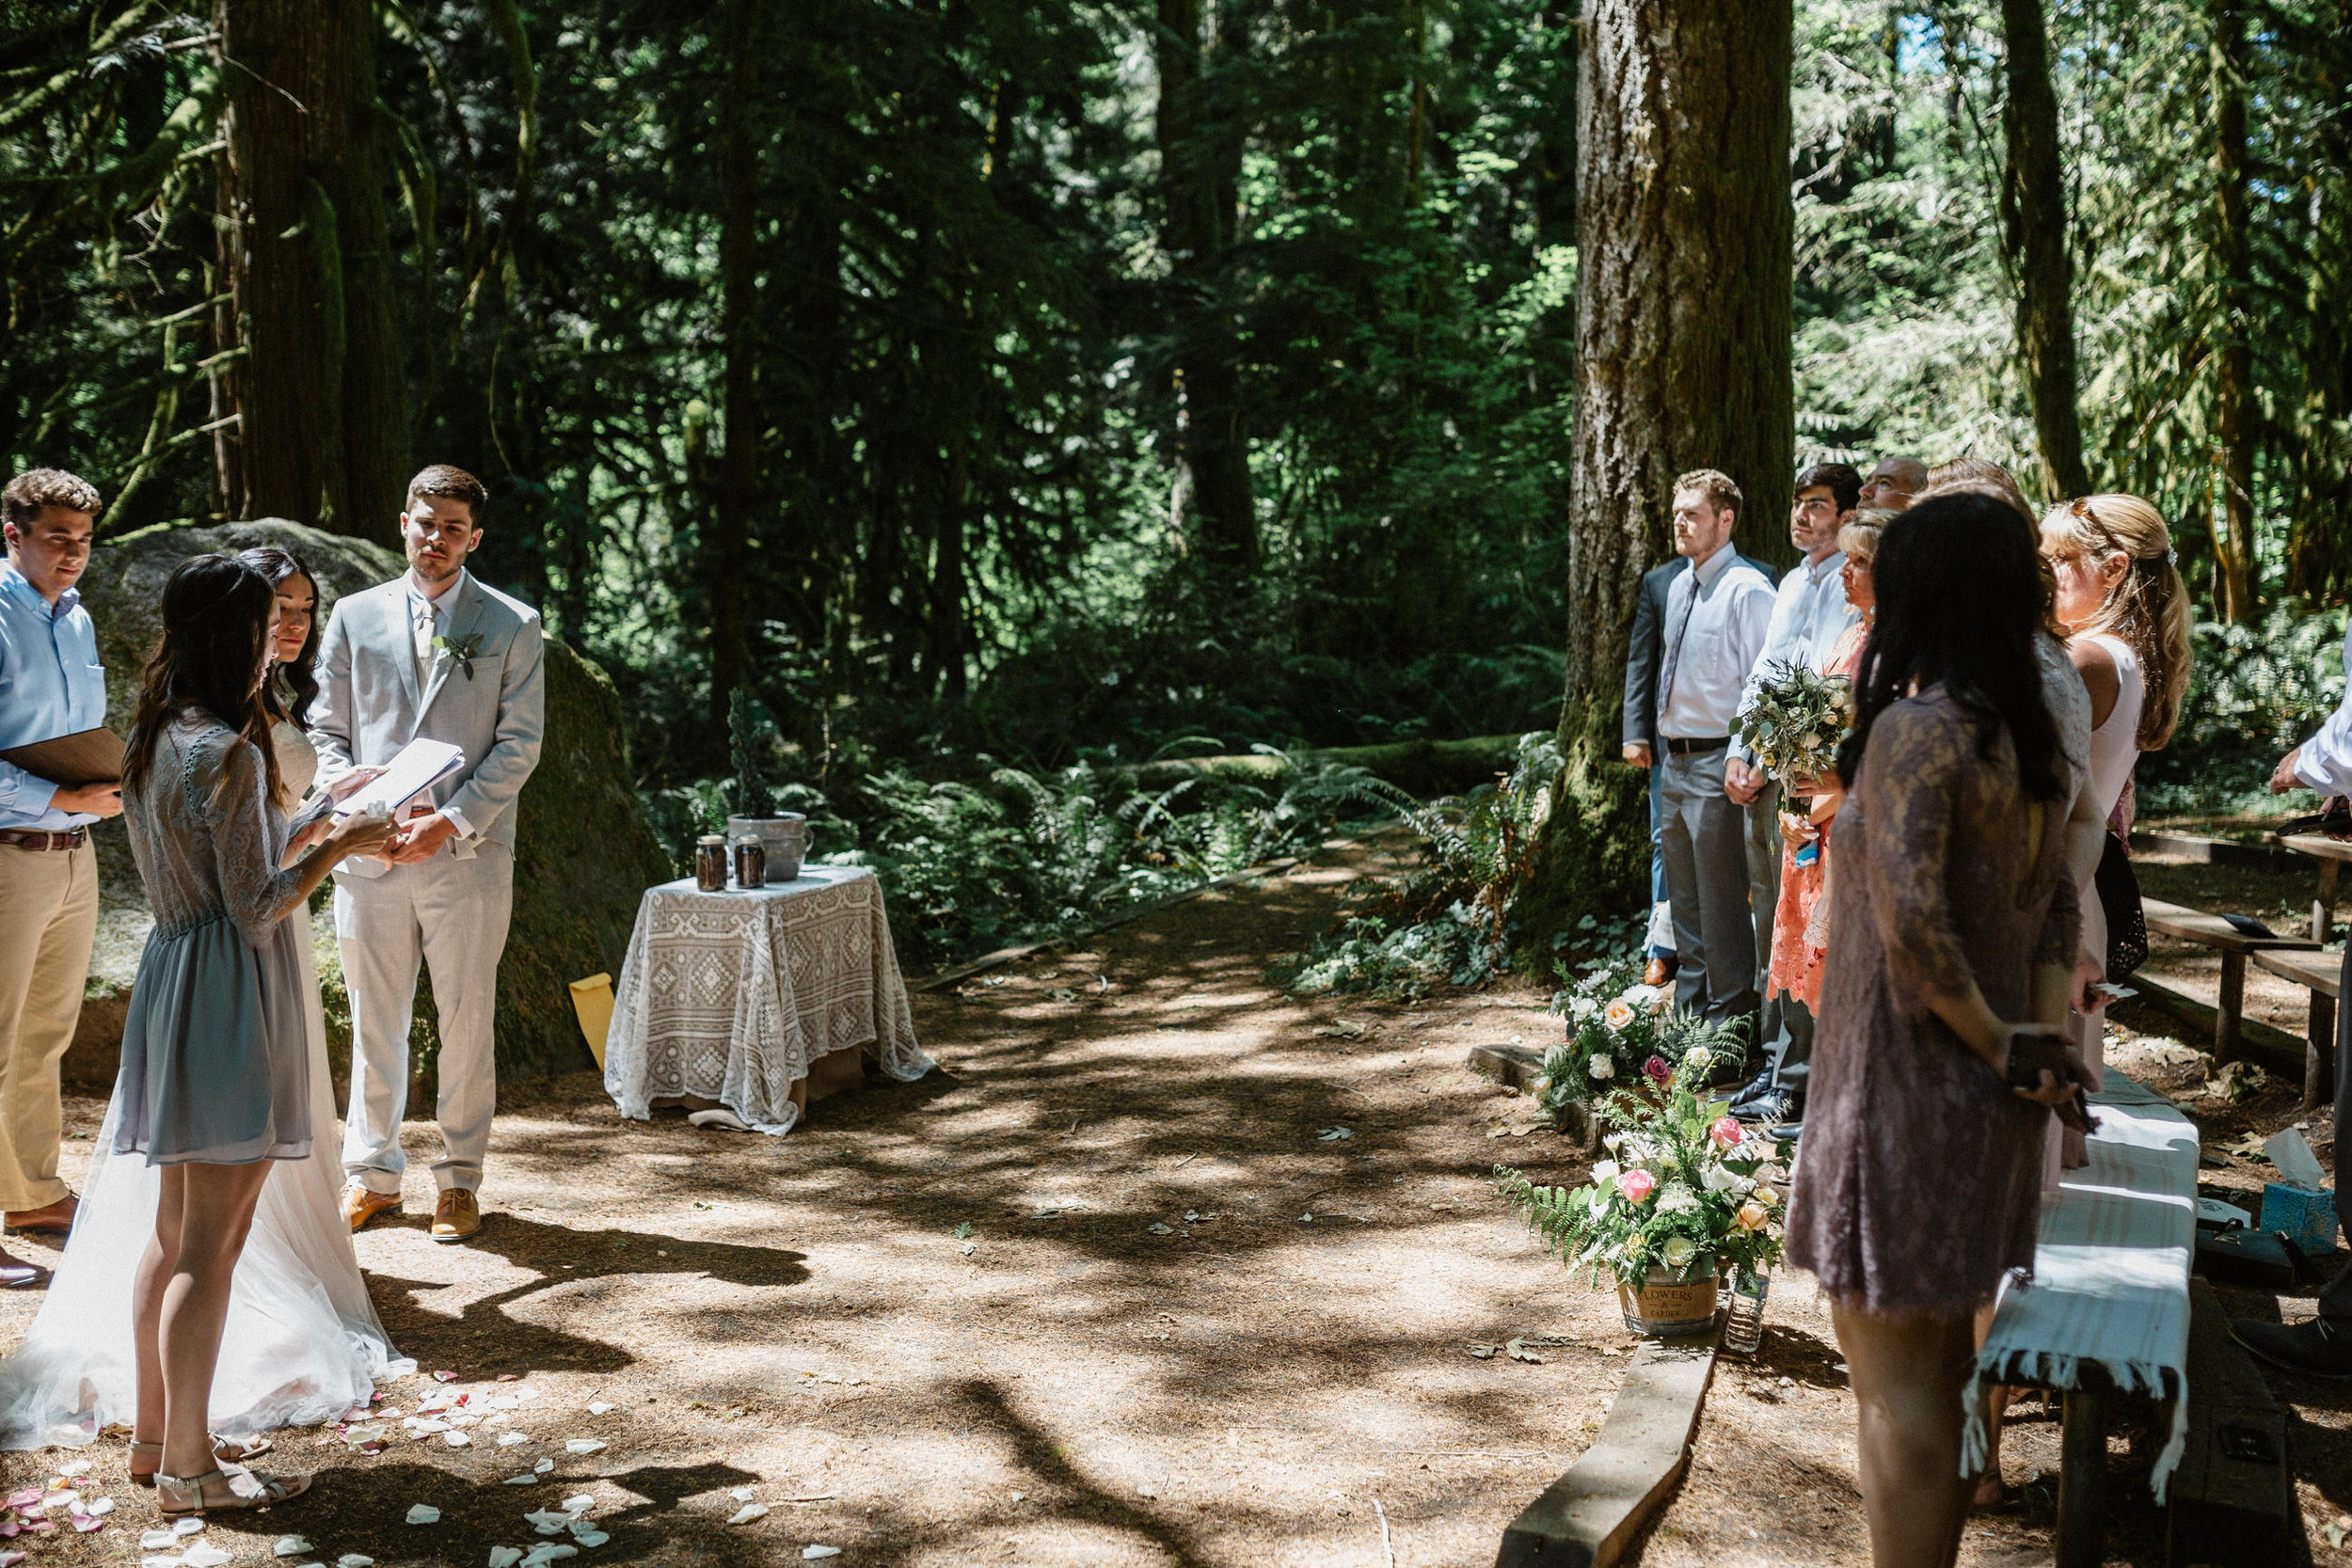 MT Hood Wildwood elopement wedding oregon portland photography0016.JPG